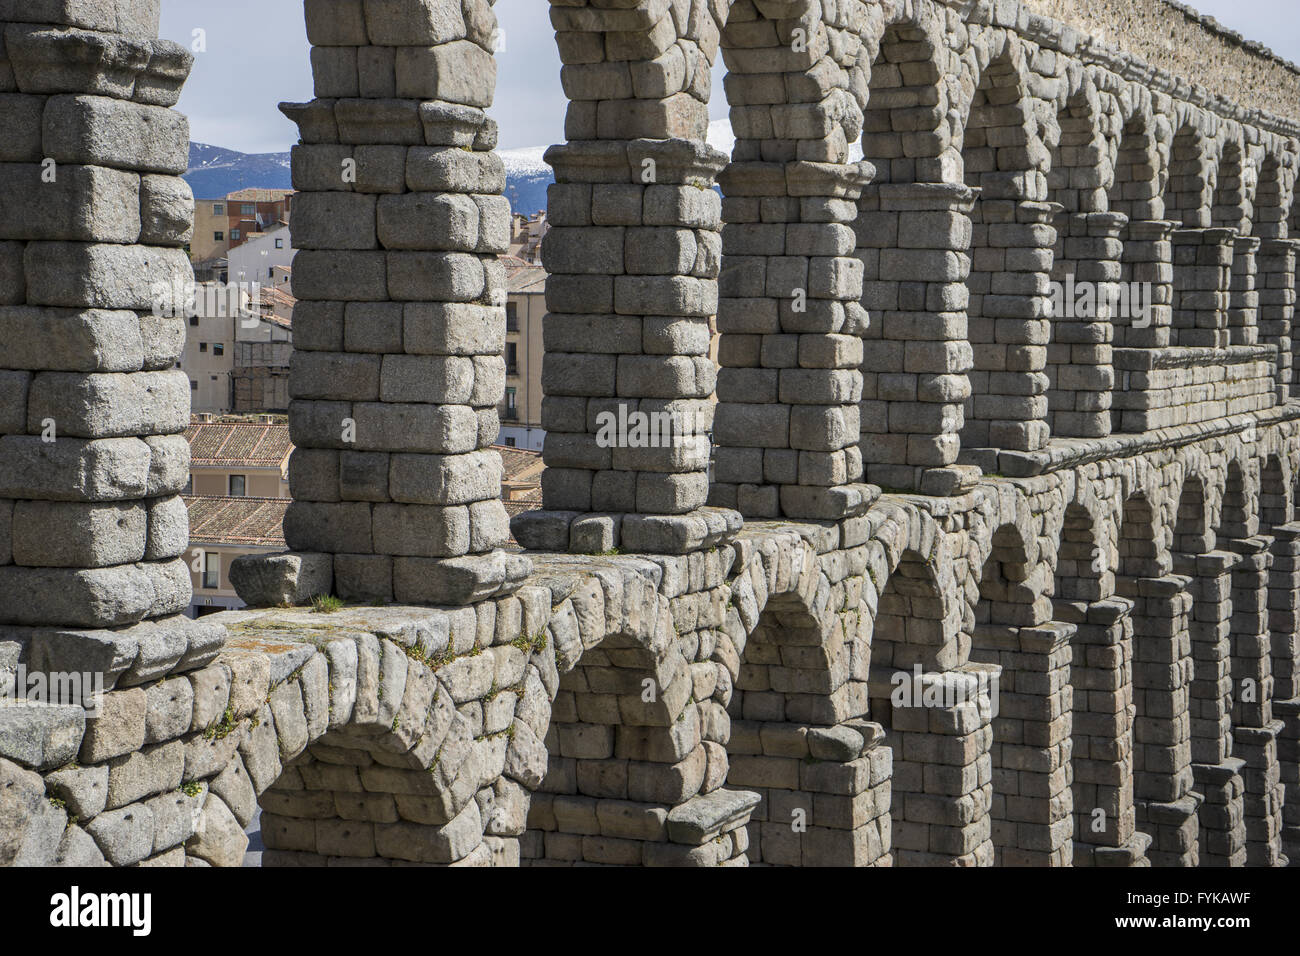 Tourist, Roman aqueduct of segovia. architectural monument declared patrimony of humanity and international interest - Stock Image